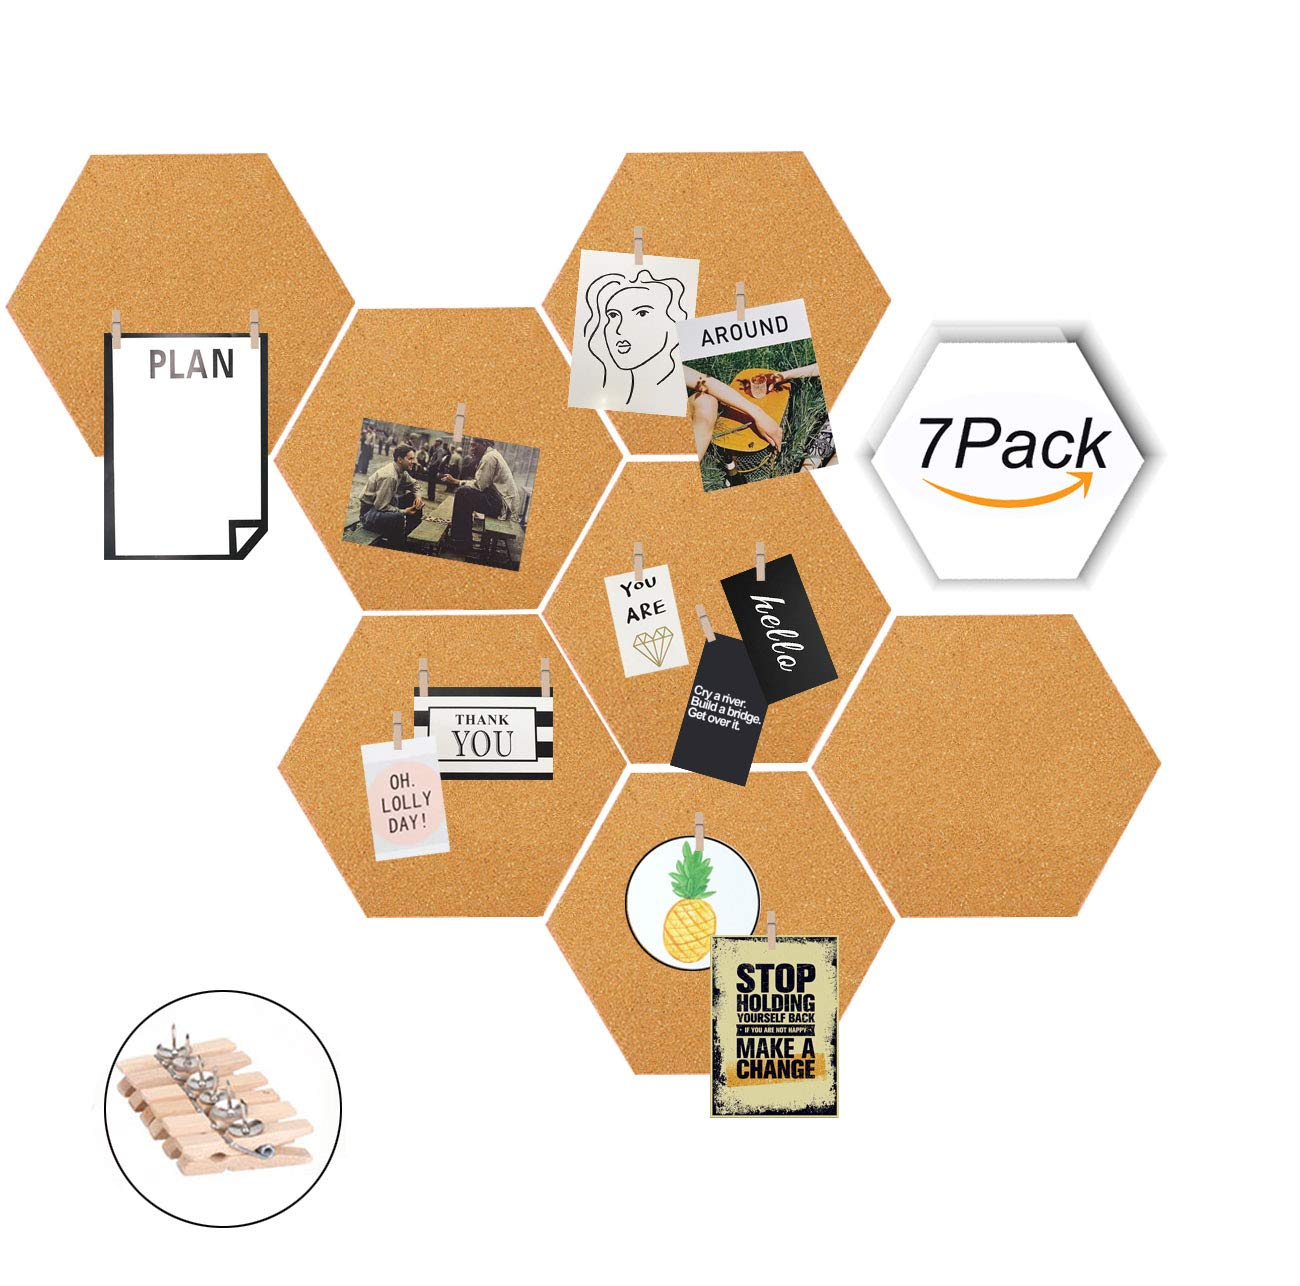 Moi Doi Wall Decor, Bulletin Board, Cork Tiles, Hexagon Cork Board with Adhesive Backing Memo Boards Message Board for Office/Home/Kitchen/Dorm Room, 7 Pack +30 PINS